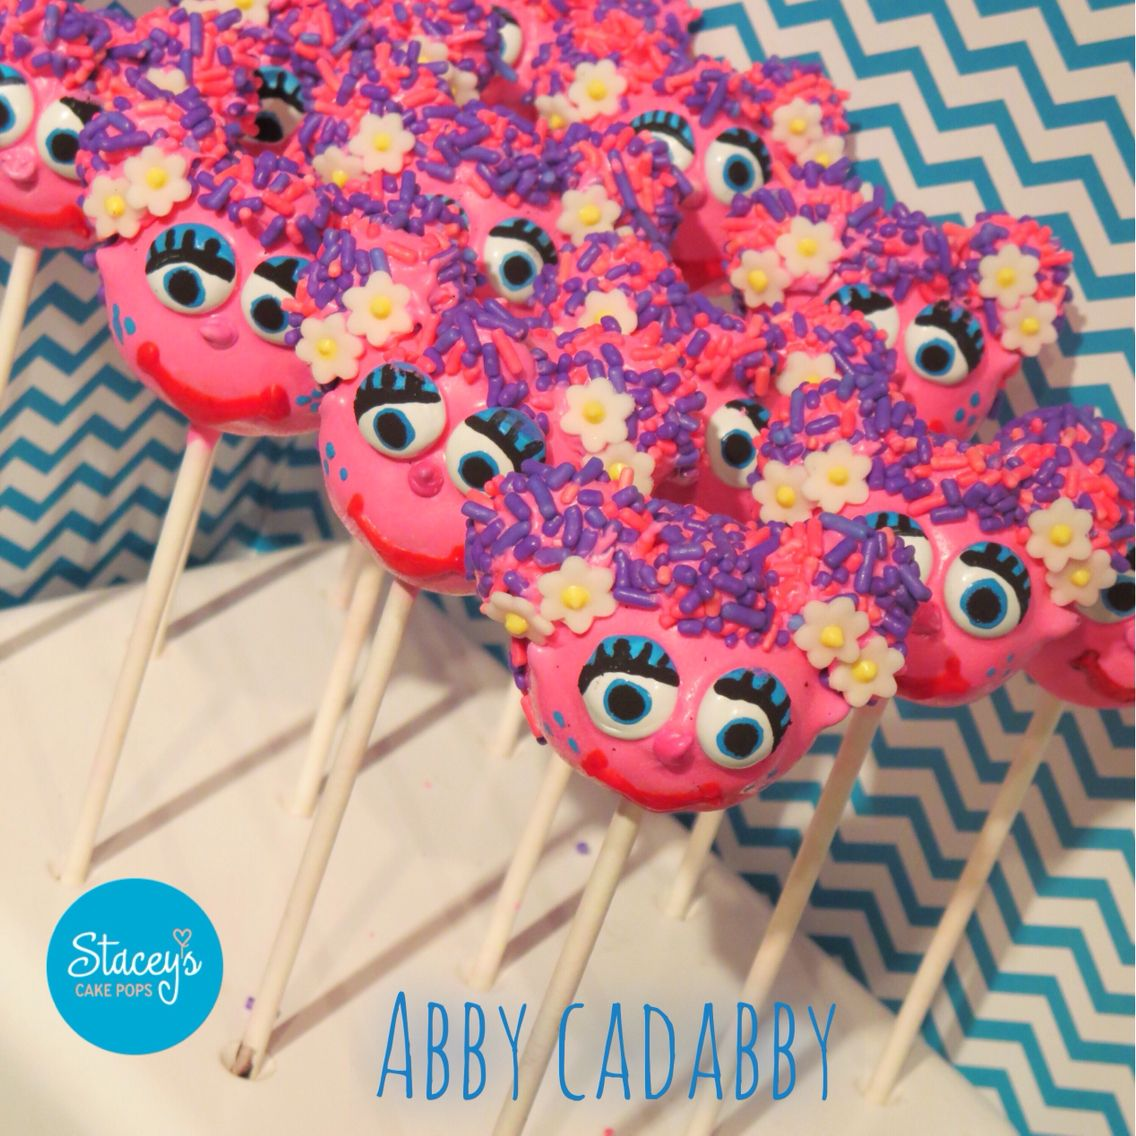 Abby Cadabby Cake Pops Staceys Cake Pops Pinterest Cake Pop - Elmo and abby birthday cake